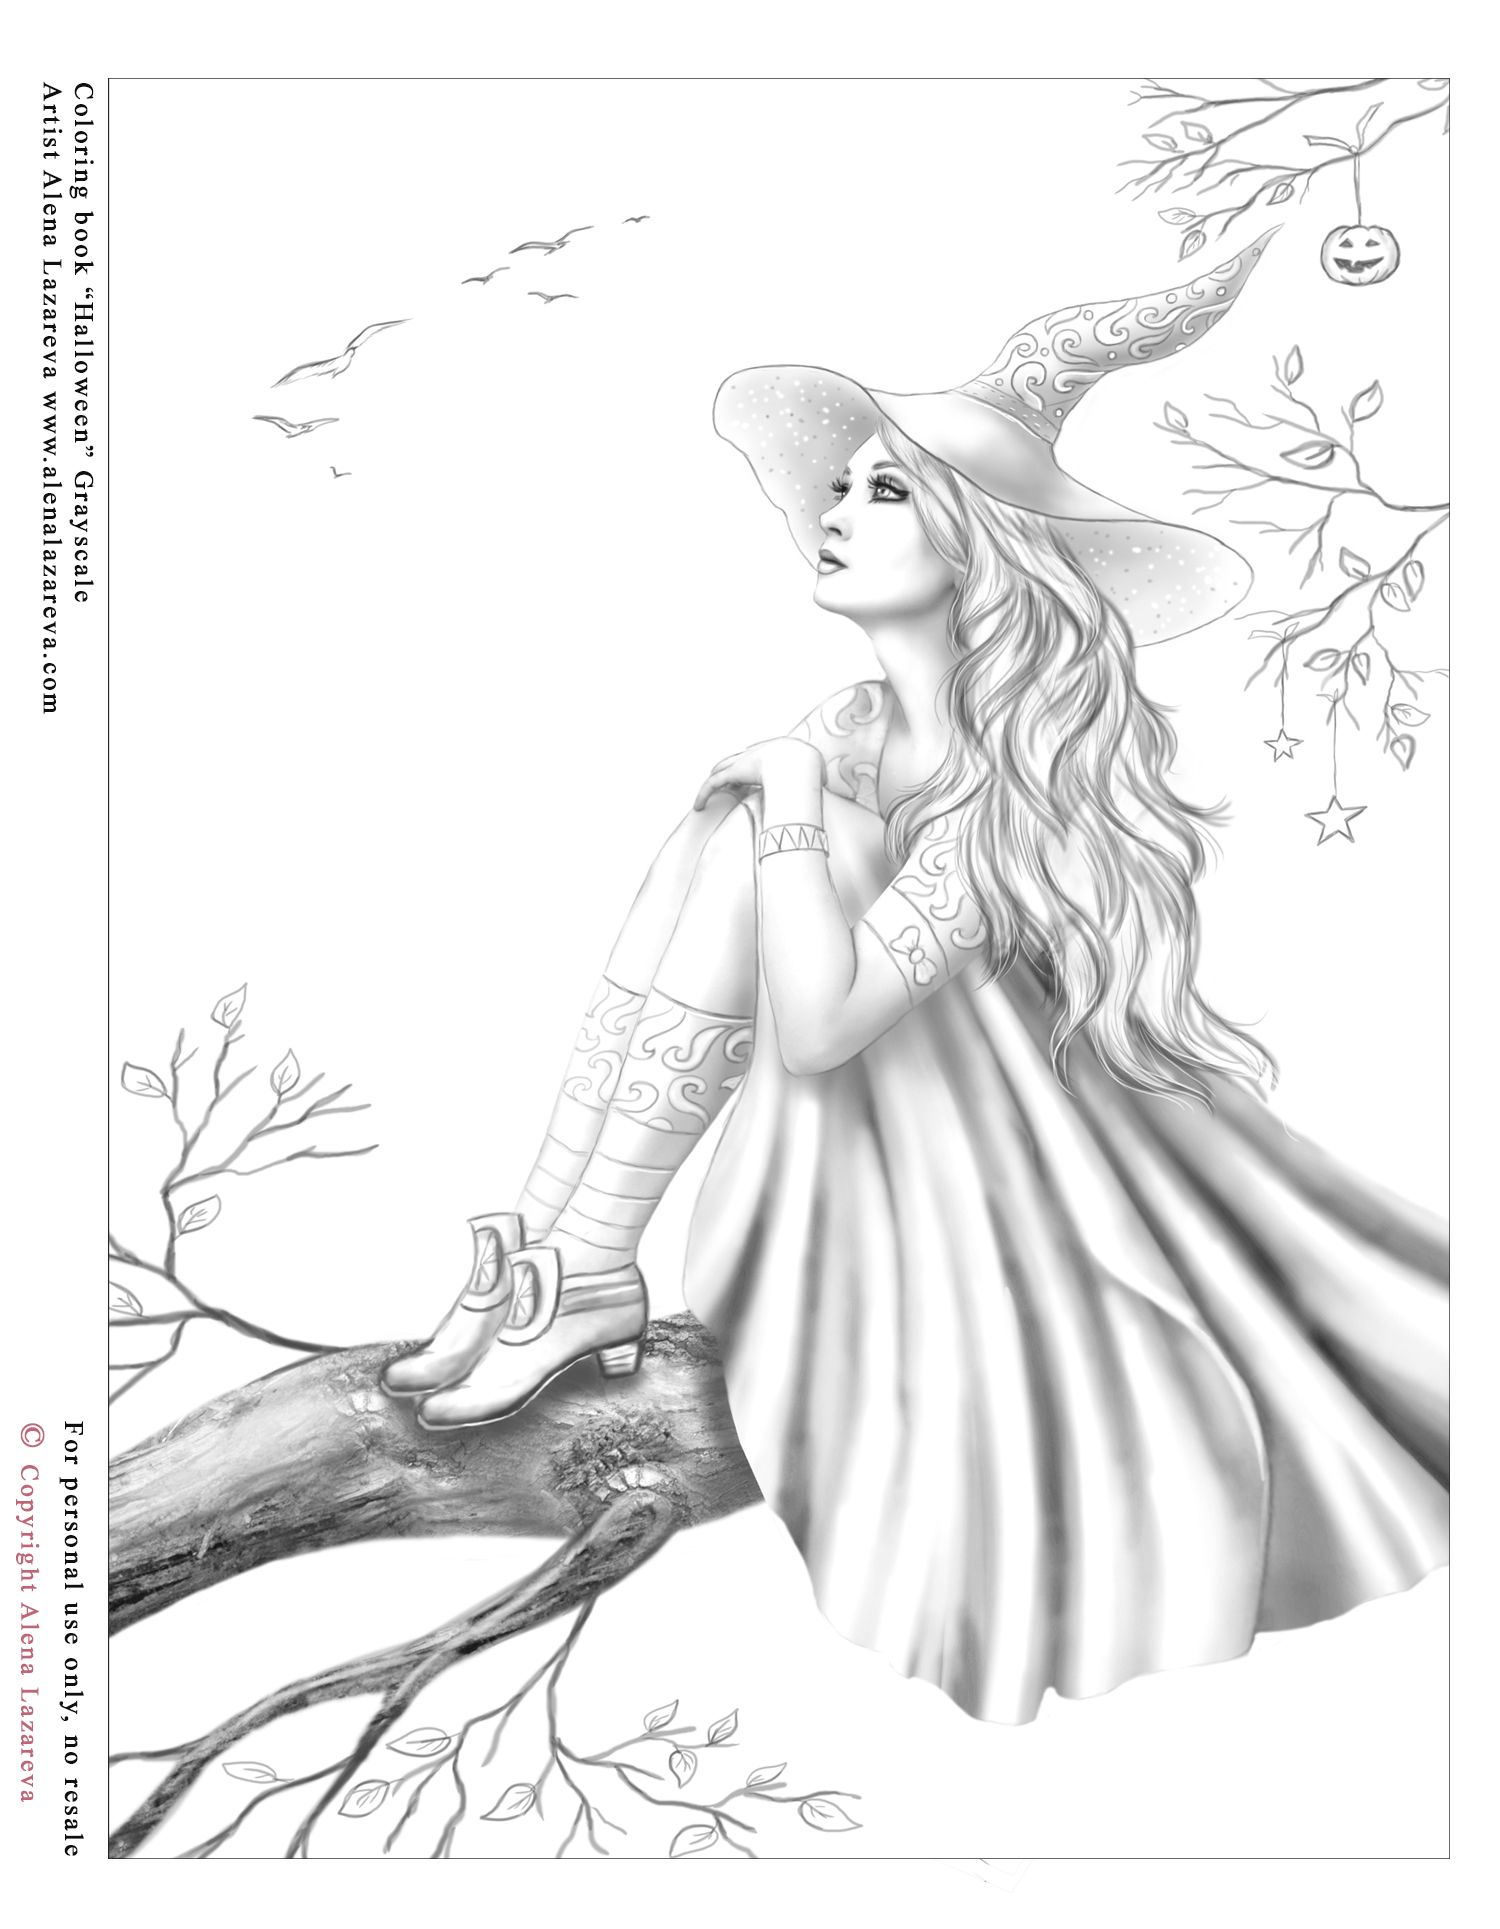 Free Grayscale Coloring Page For Personal Use Only No Resale Free Coloring Page From My Col Grayscale Coloring Grayscale Coloring Books Witch Coloring Pages